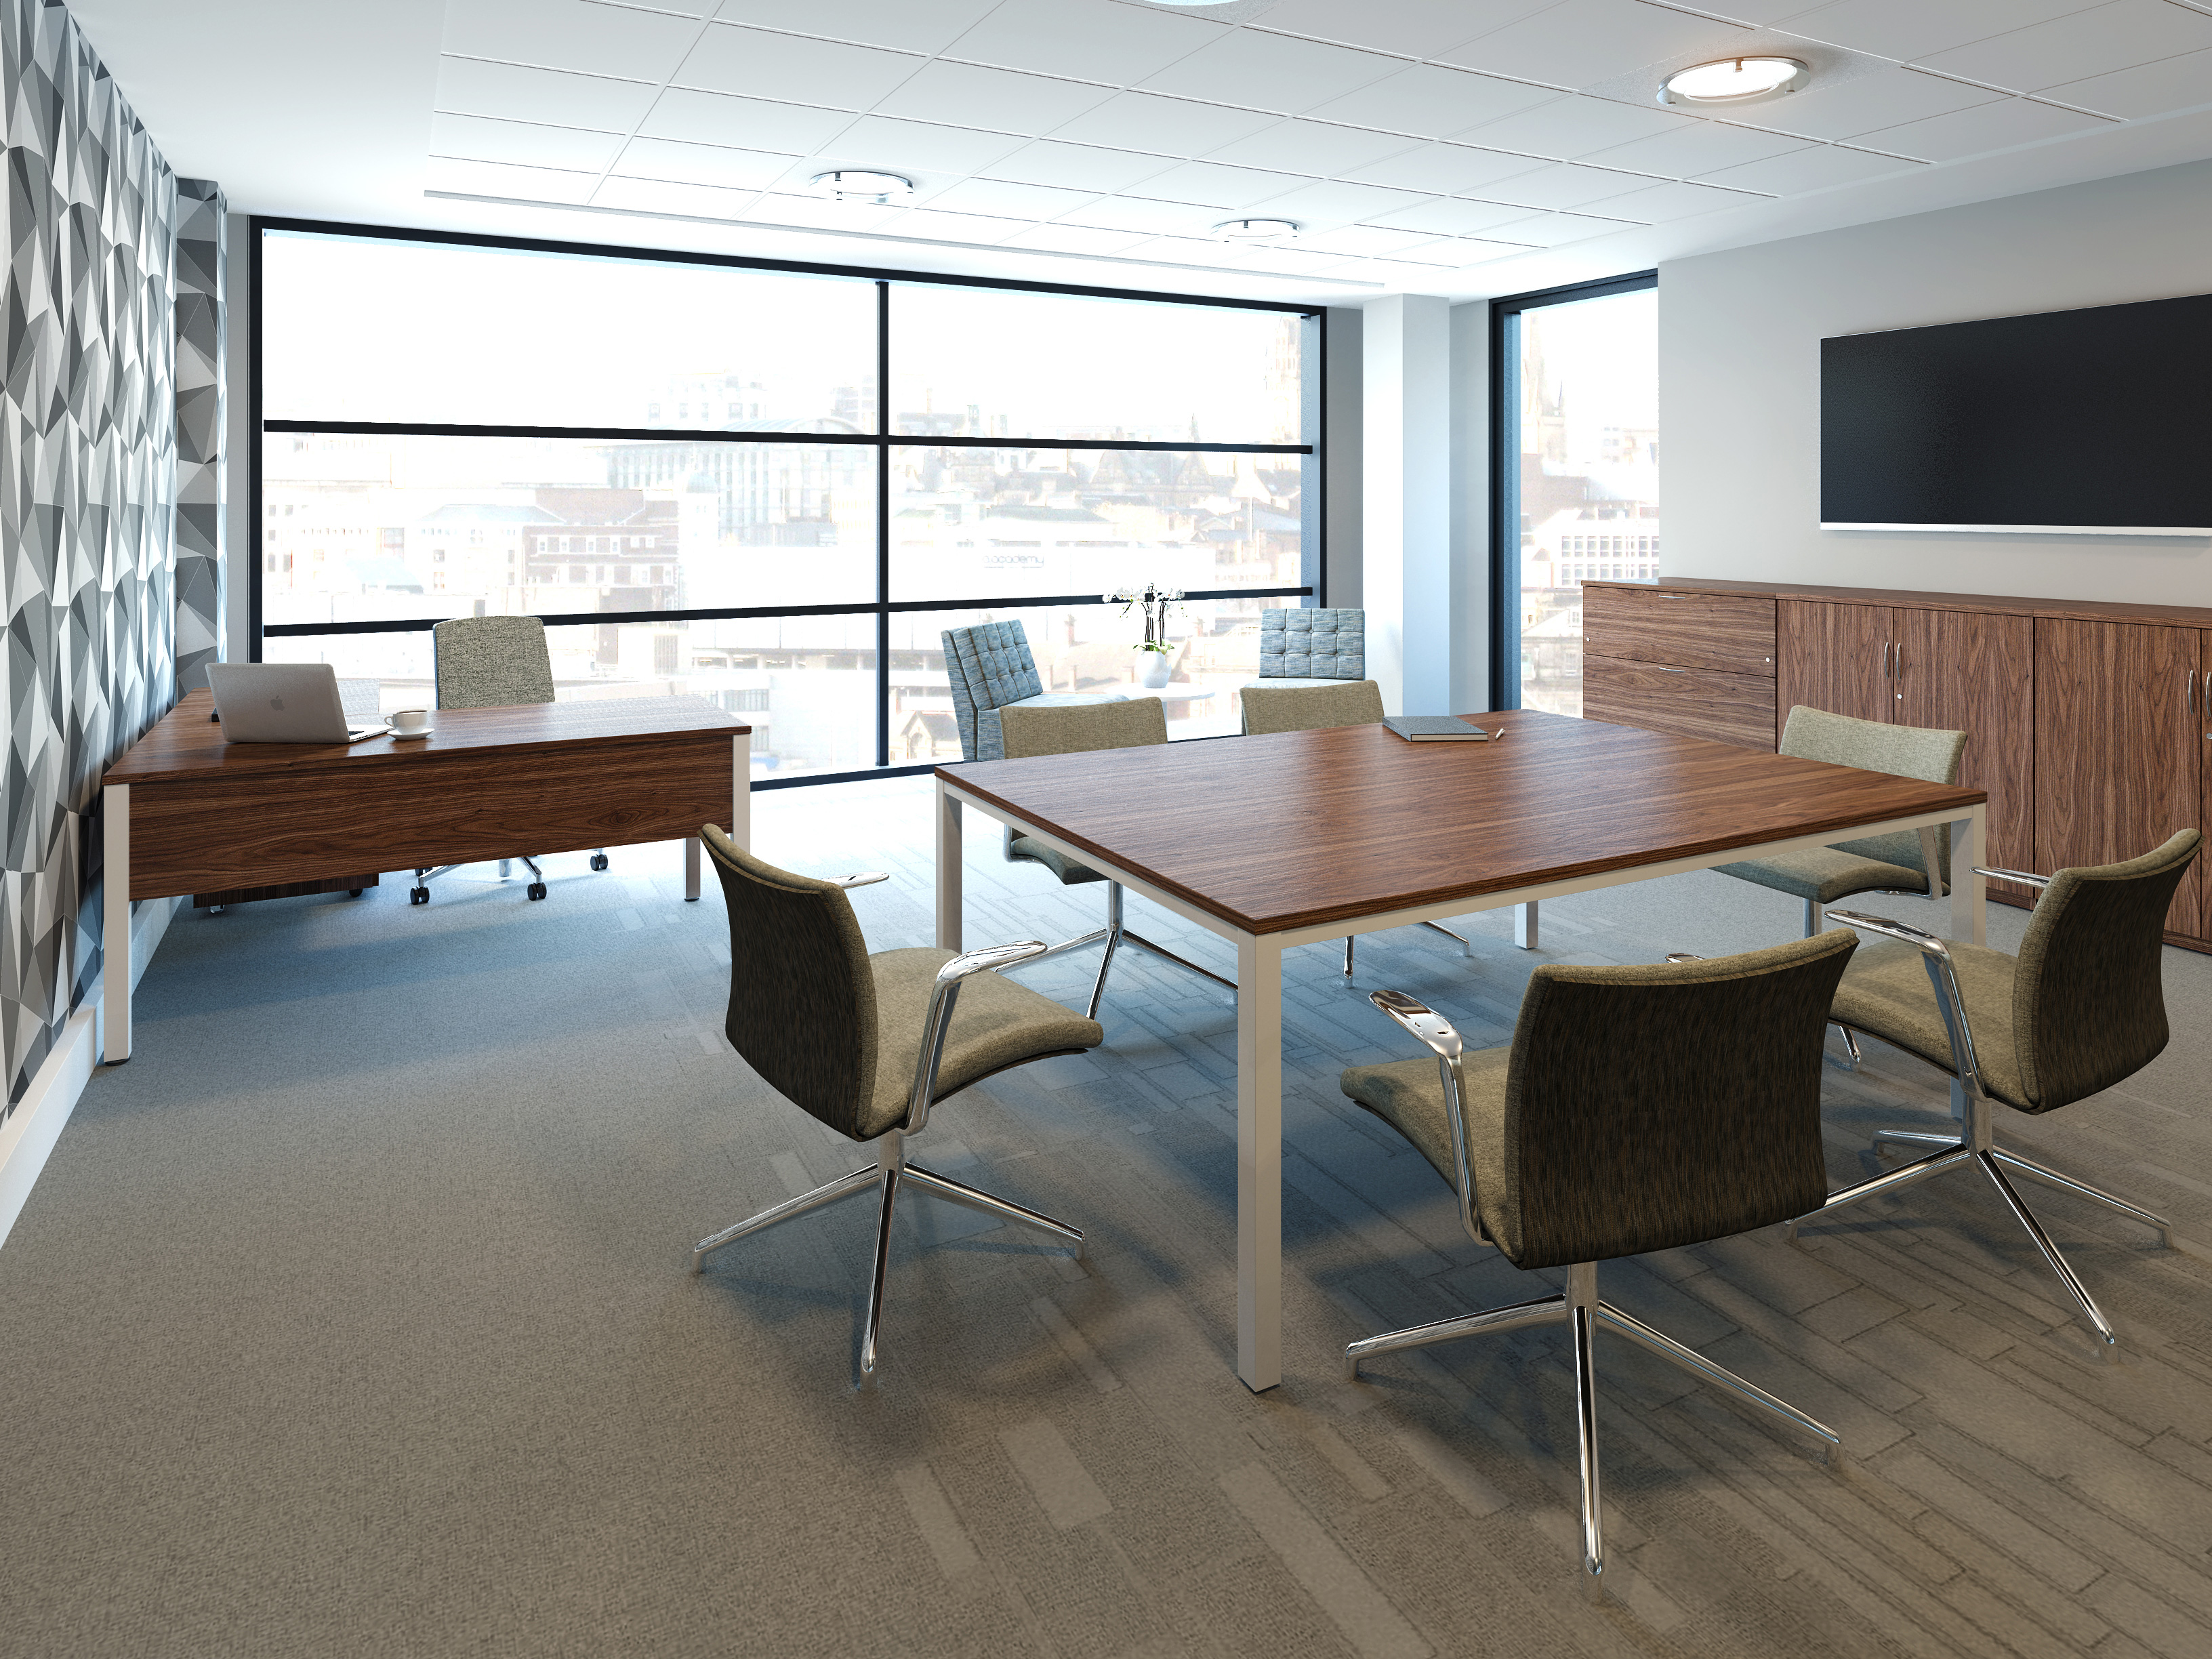 EBORCRAFT LAUNCHES THE NEW AVID RANGE OF CONTEMPORARY OFFICE FURNITURE